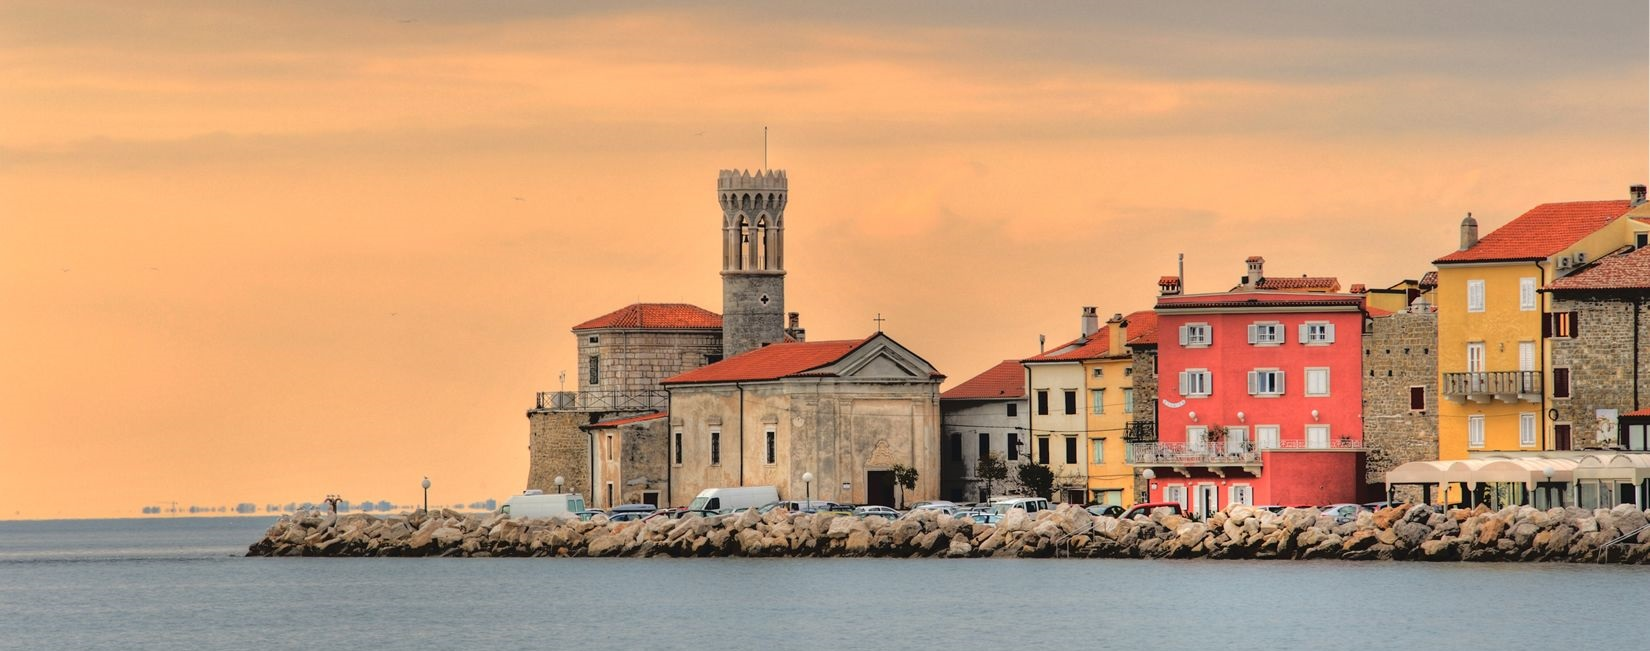 piran panoramic slovenian coast